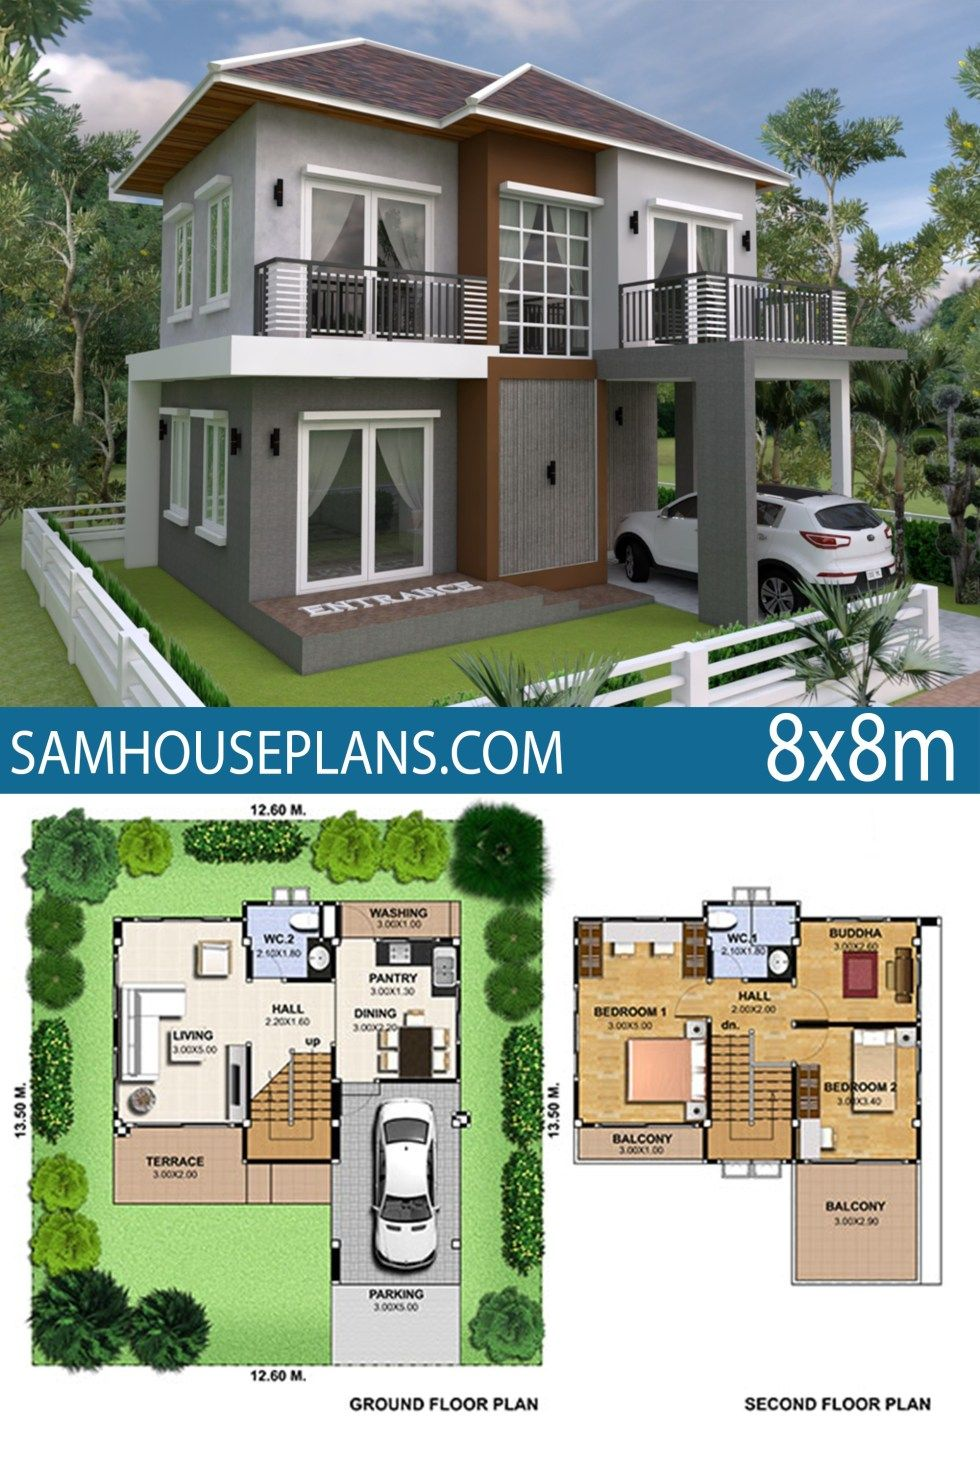 House Plan 8x8m With 3 Bedrooms Sam House Plans Model House Plan House Plans Open Floor House Plans